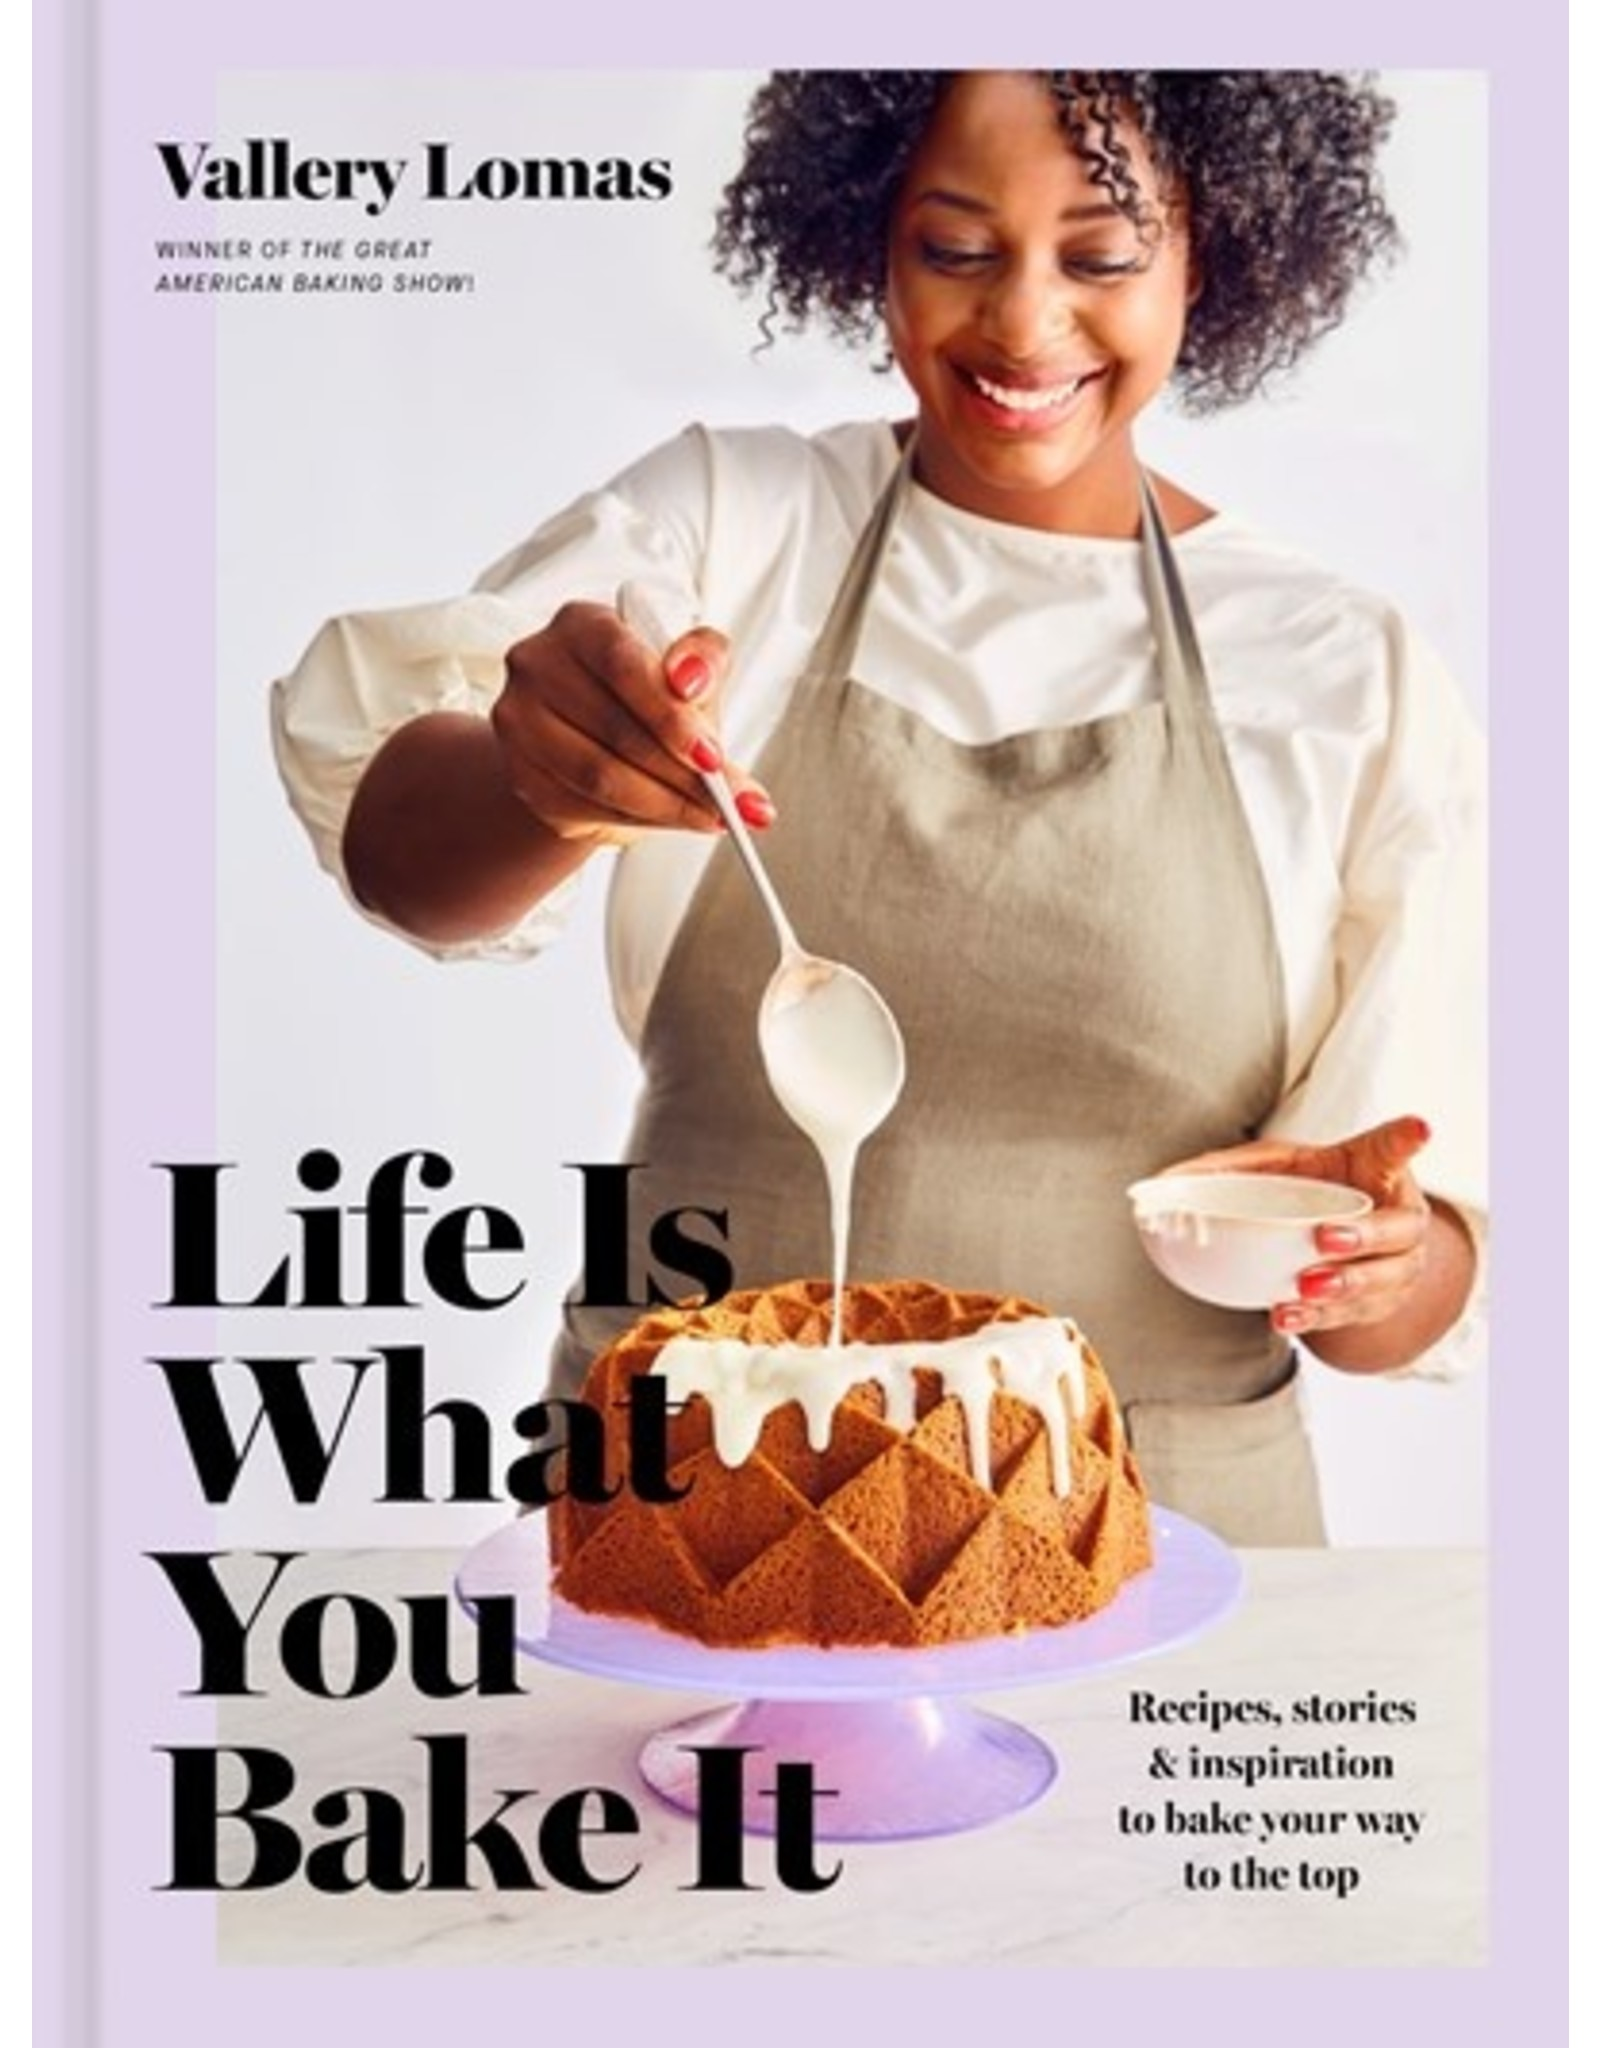 Books Life is What You Bake It by Vallery Lomas